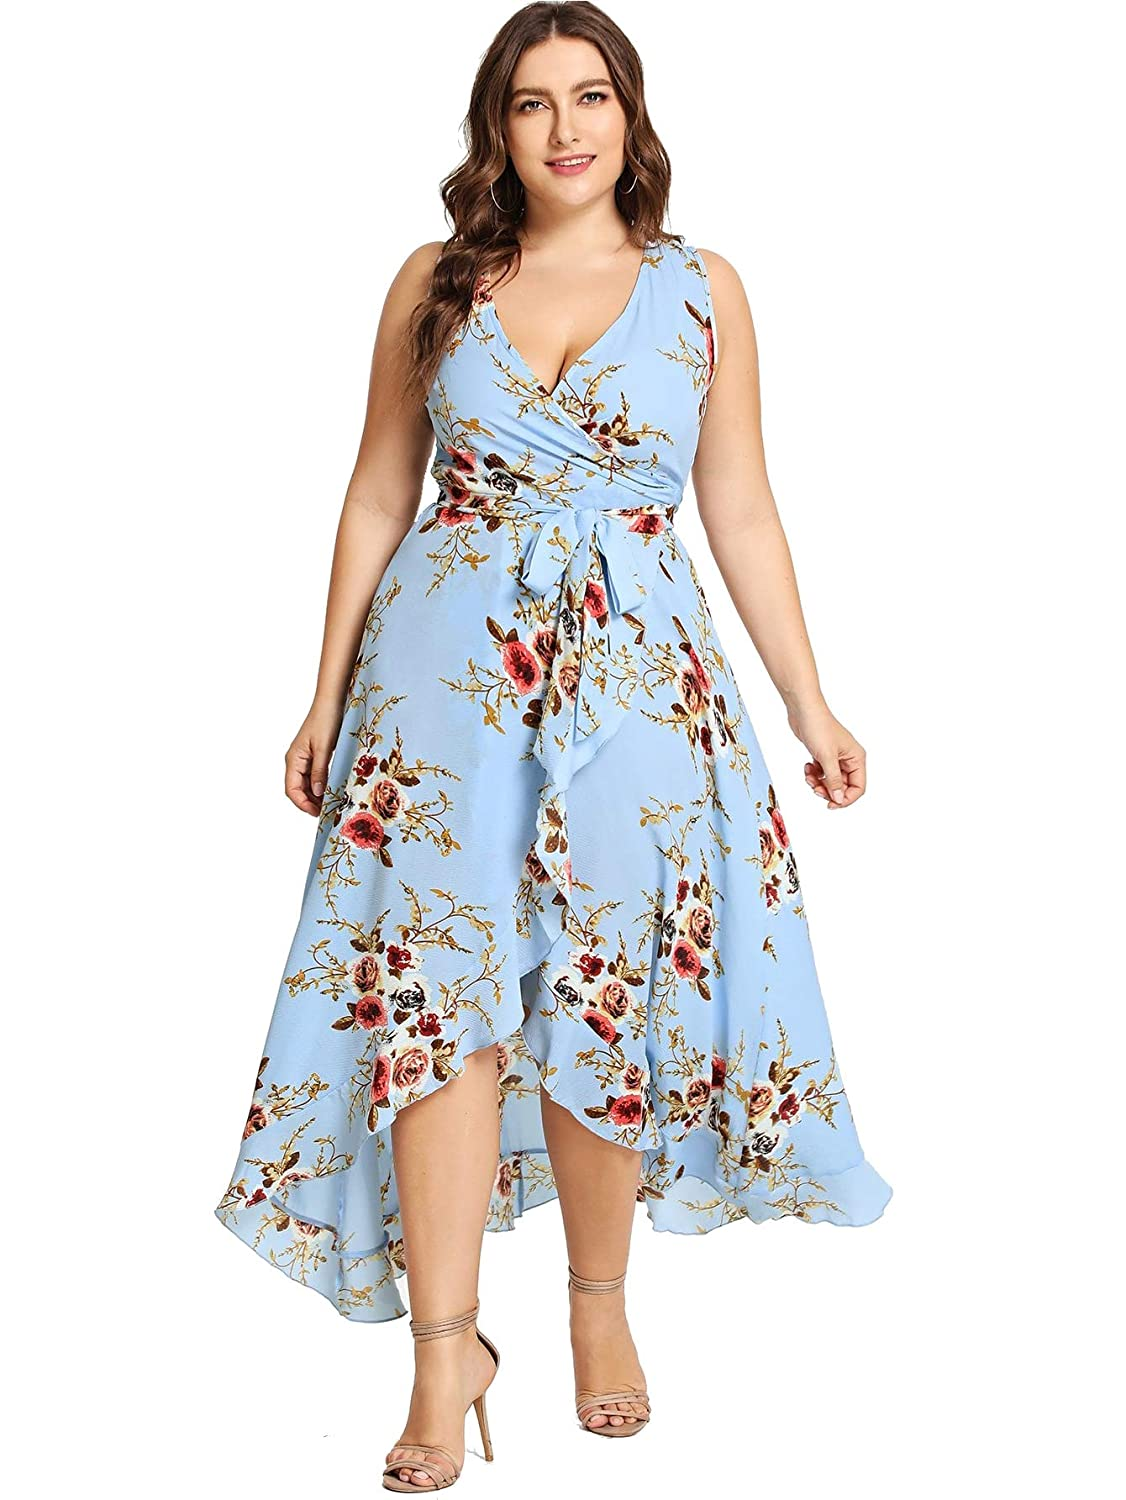 11b6458abe465 Milumia Plus Size Fit and Flare Empire Waist Floral Printed Sleeveless Dress  V Neck Sundress at Amazon Women's Clothing store: